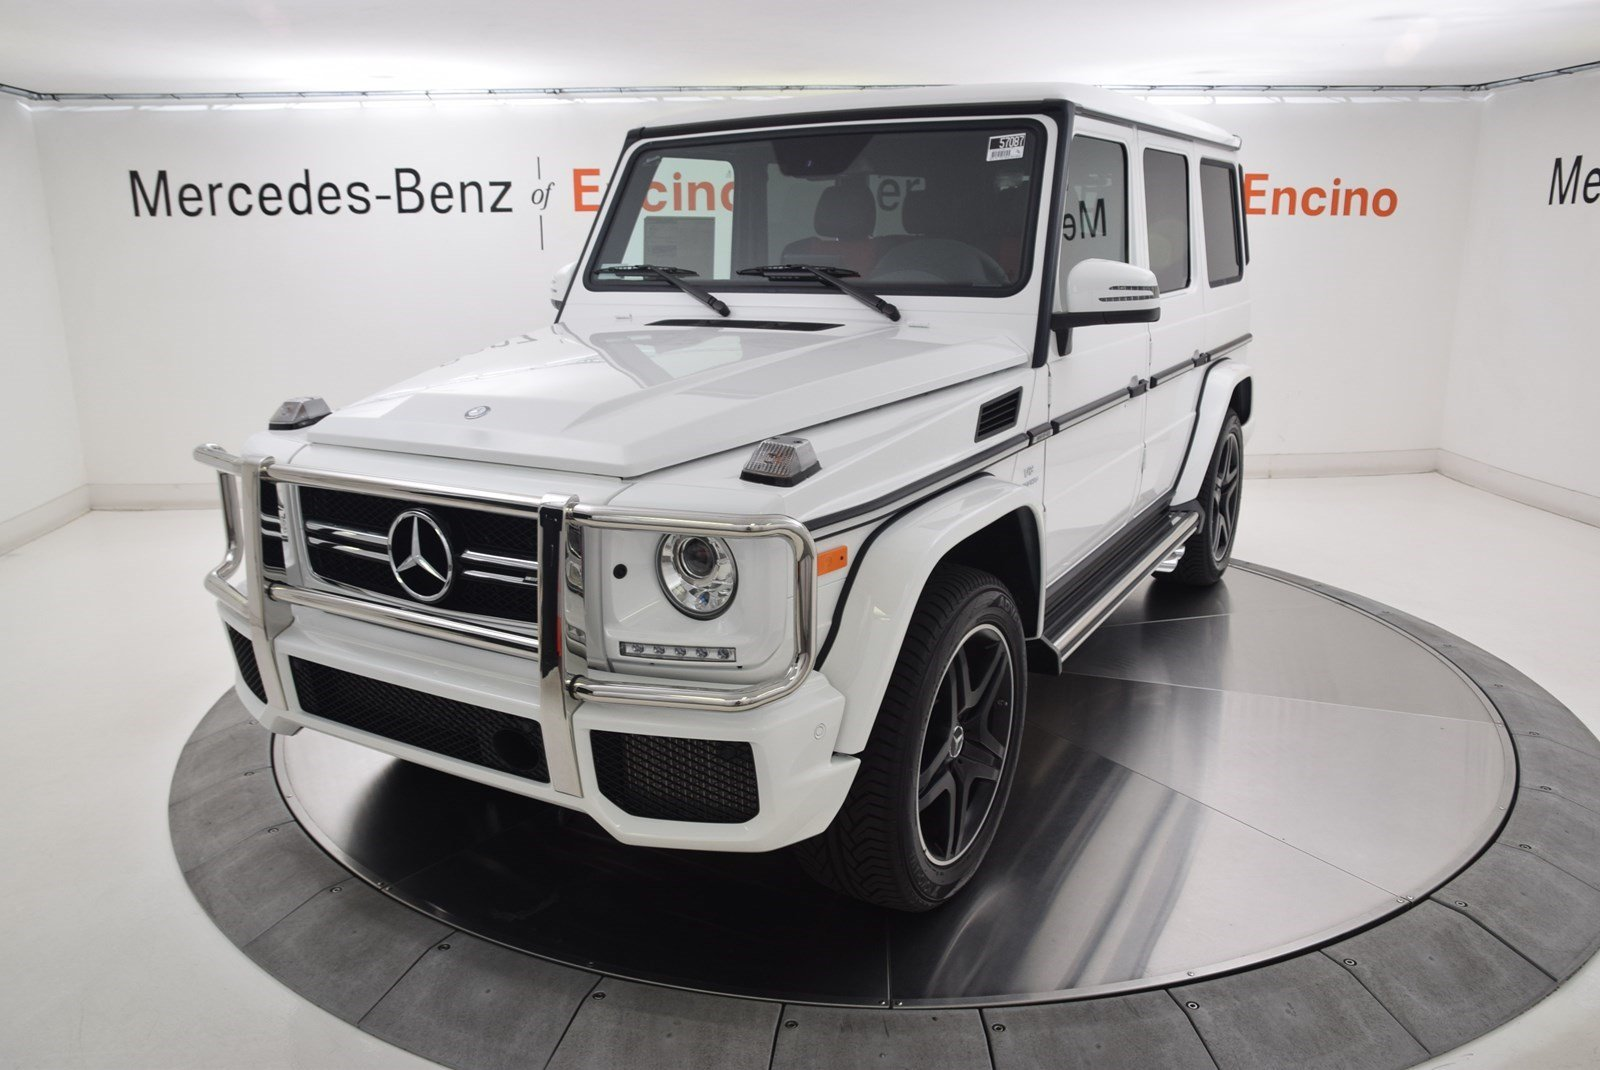 new 2017 mercedes-benz g-class g 63 amg® suv suv in encino #57087